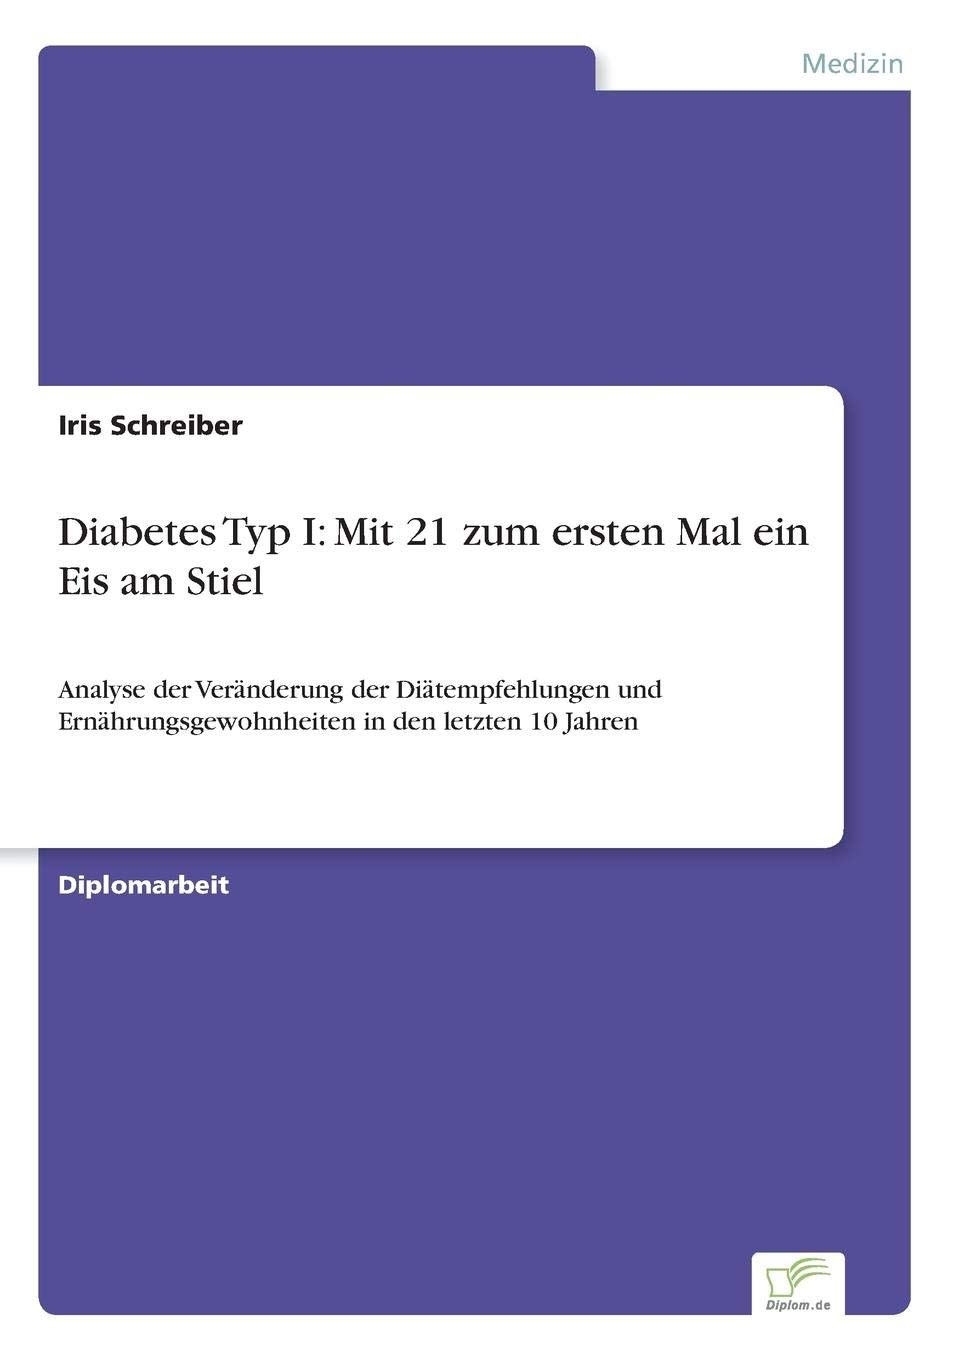 diabetes typ 1 intensivierte therapie